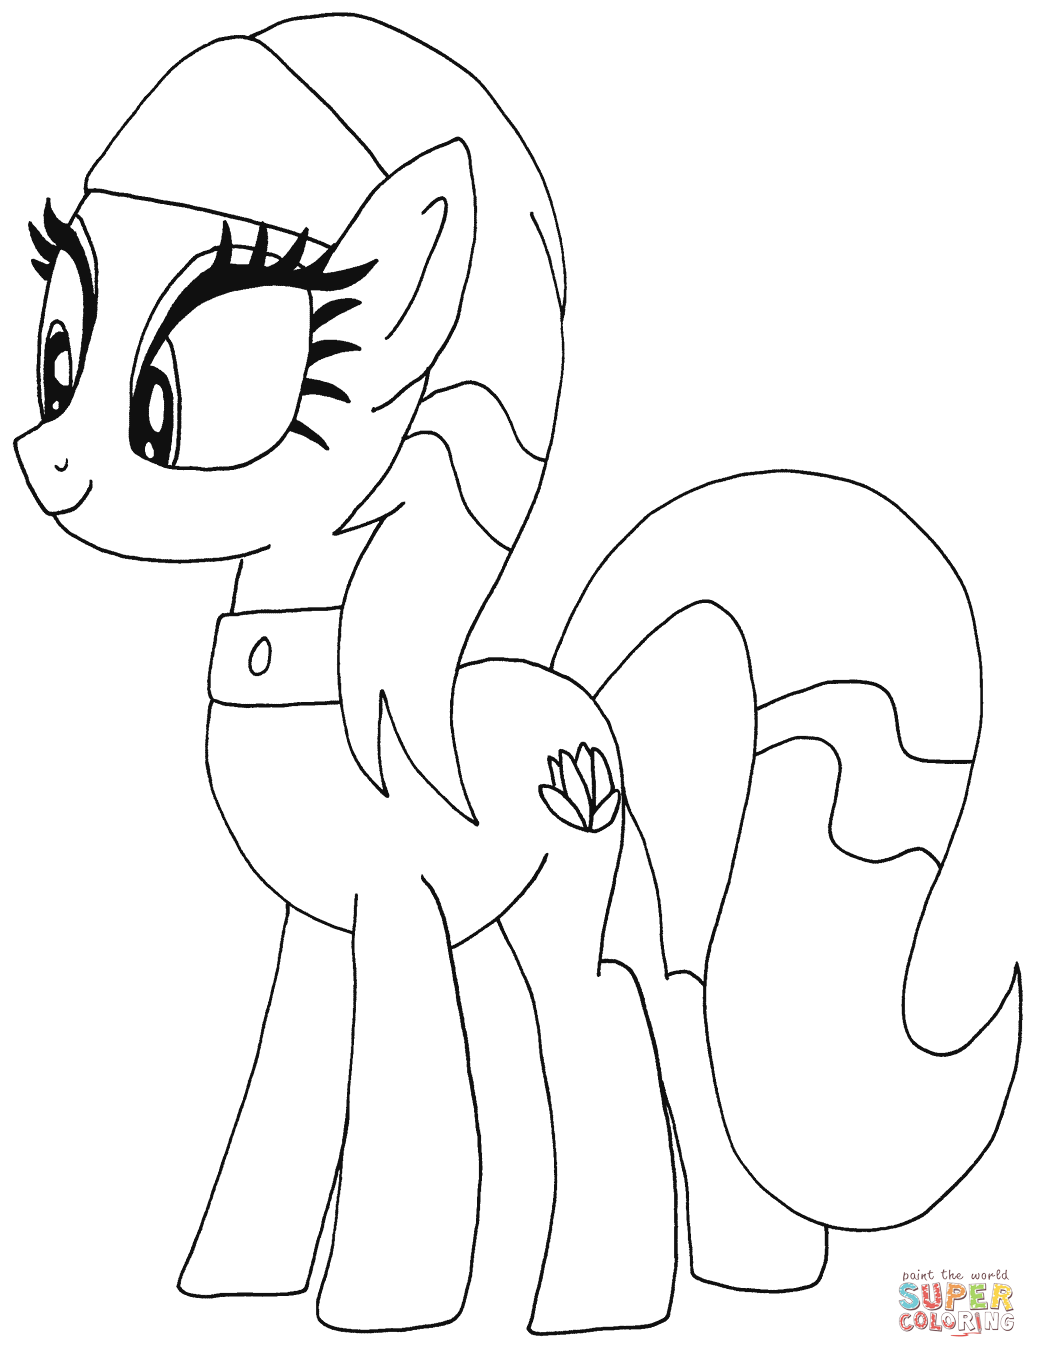 Lotus Blossom My Little Pony from My Little Pony Coloring Page